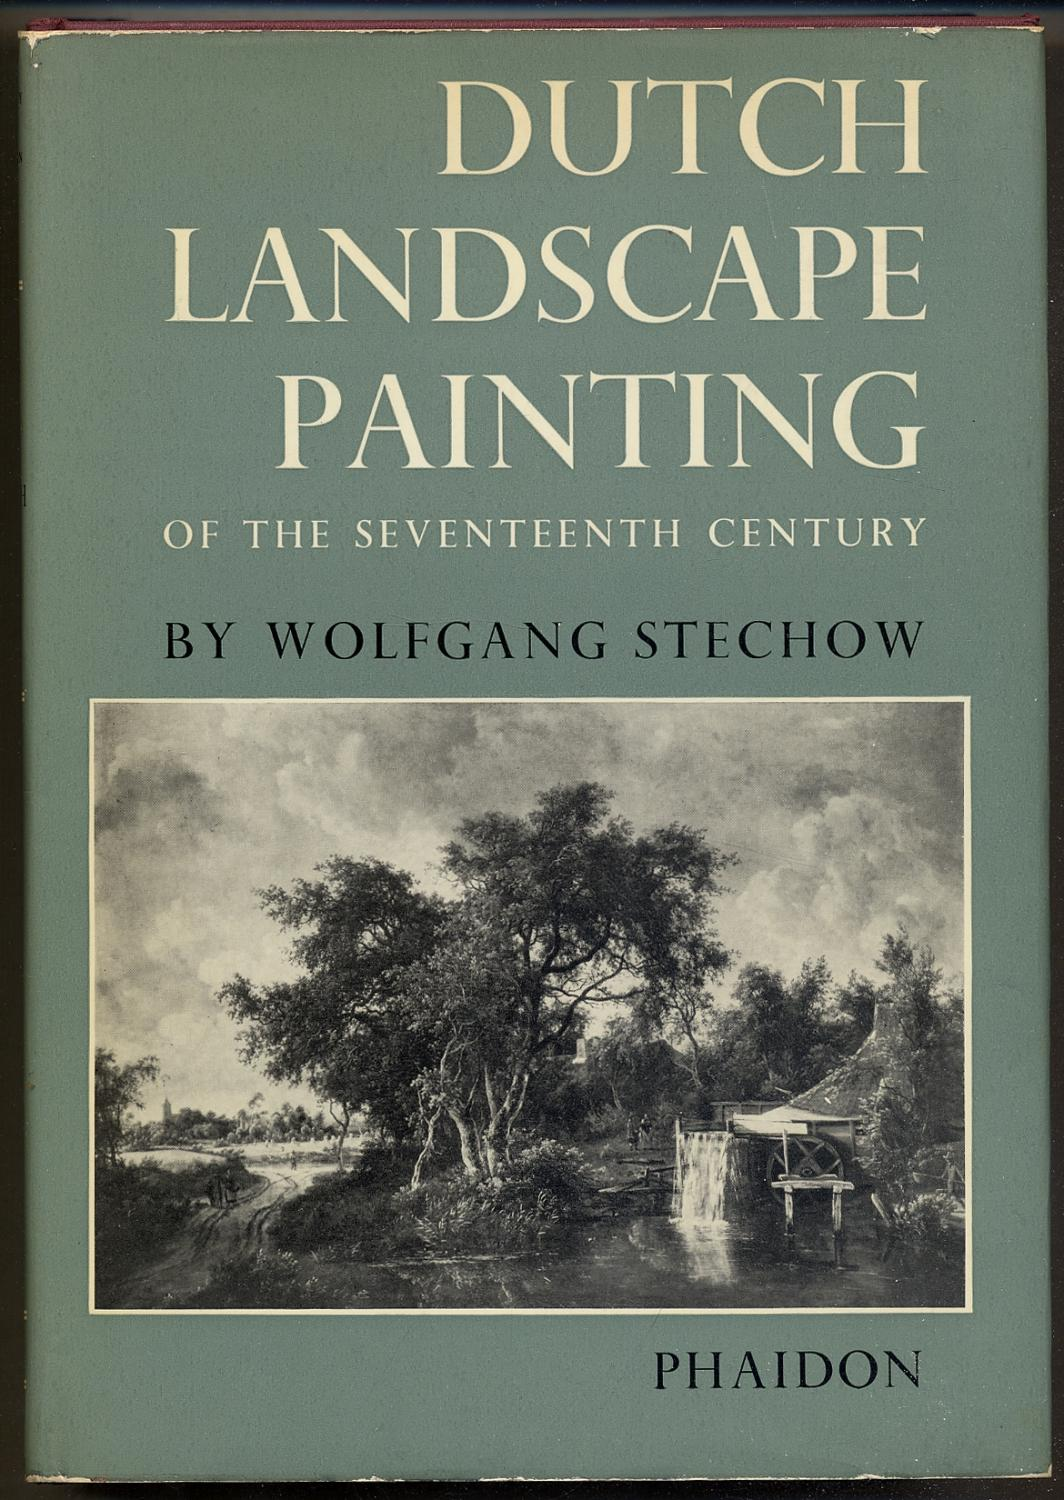 Dutch Landscape Painting of the Seventeenth Century: STECHOW, Wolfgang